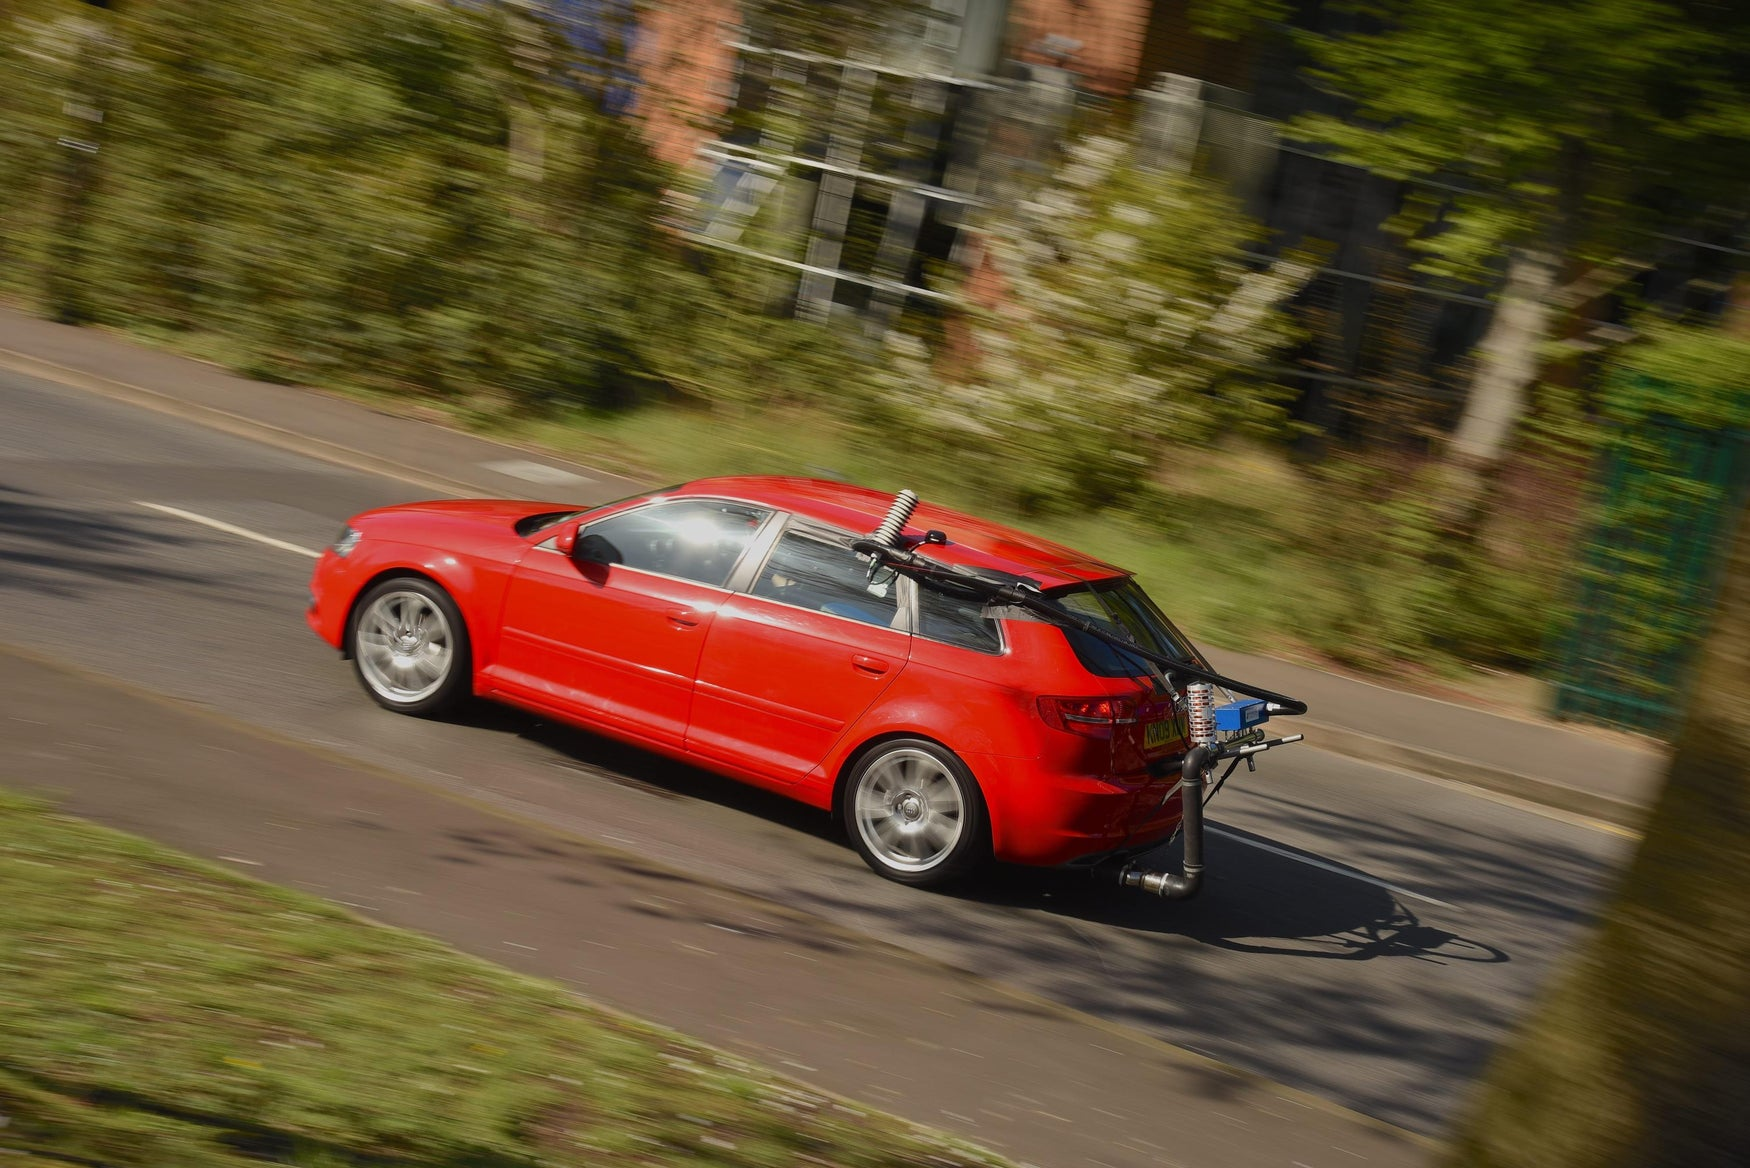 Audi A3 being tested for CO2 emissions